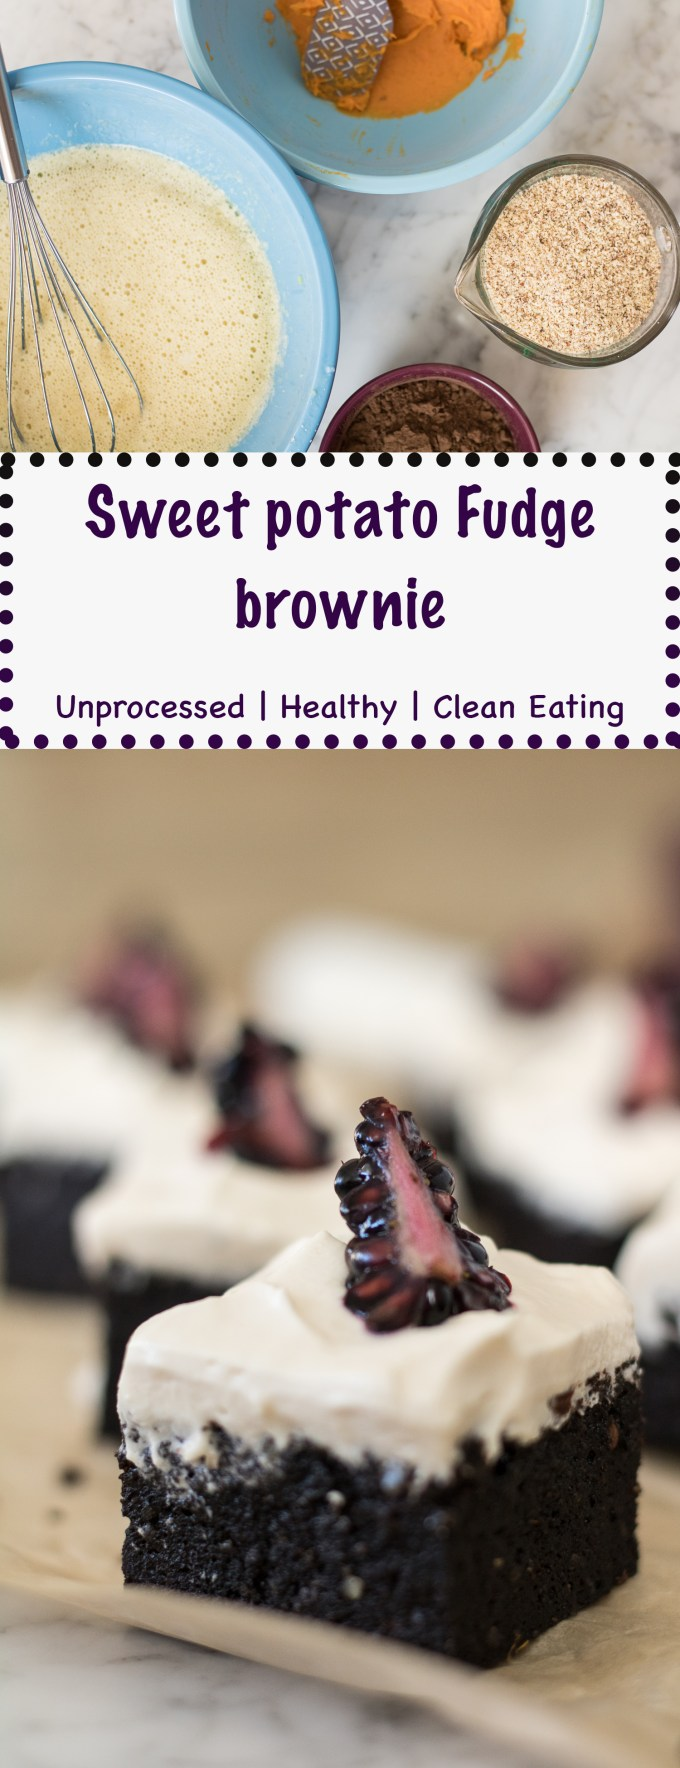 make sure to pin this awesome sweet potato fudge brownie on pinterest